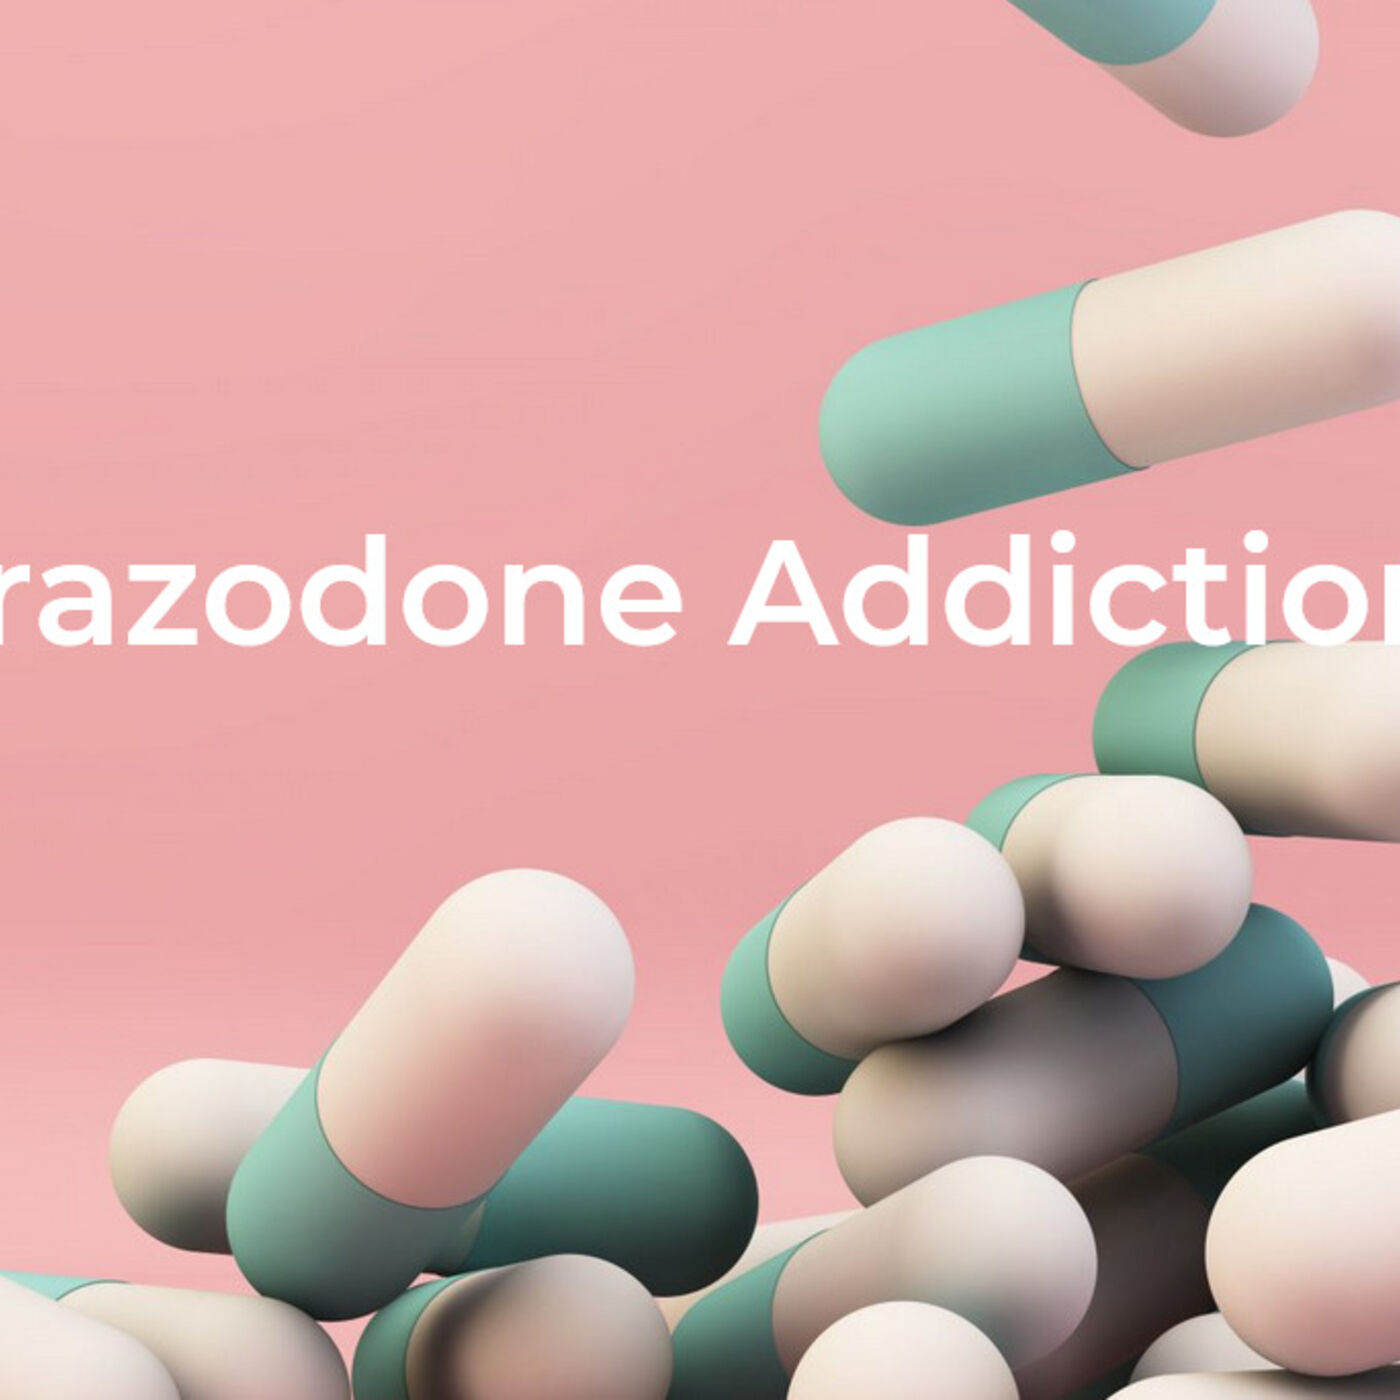 Trazodone Addiction (Podcast) * All You Need to Know About Trazodone Addiction & Trazodone Rehab